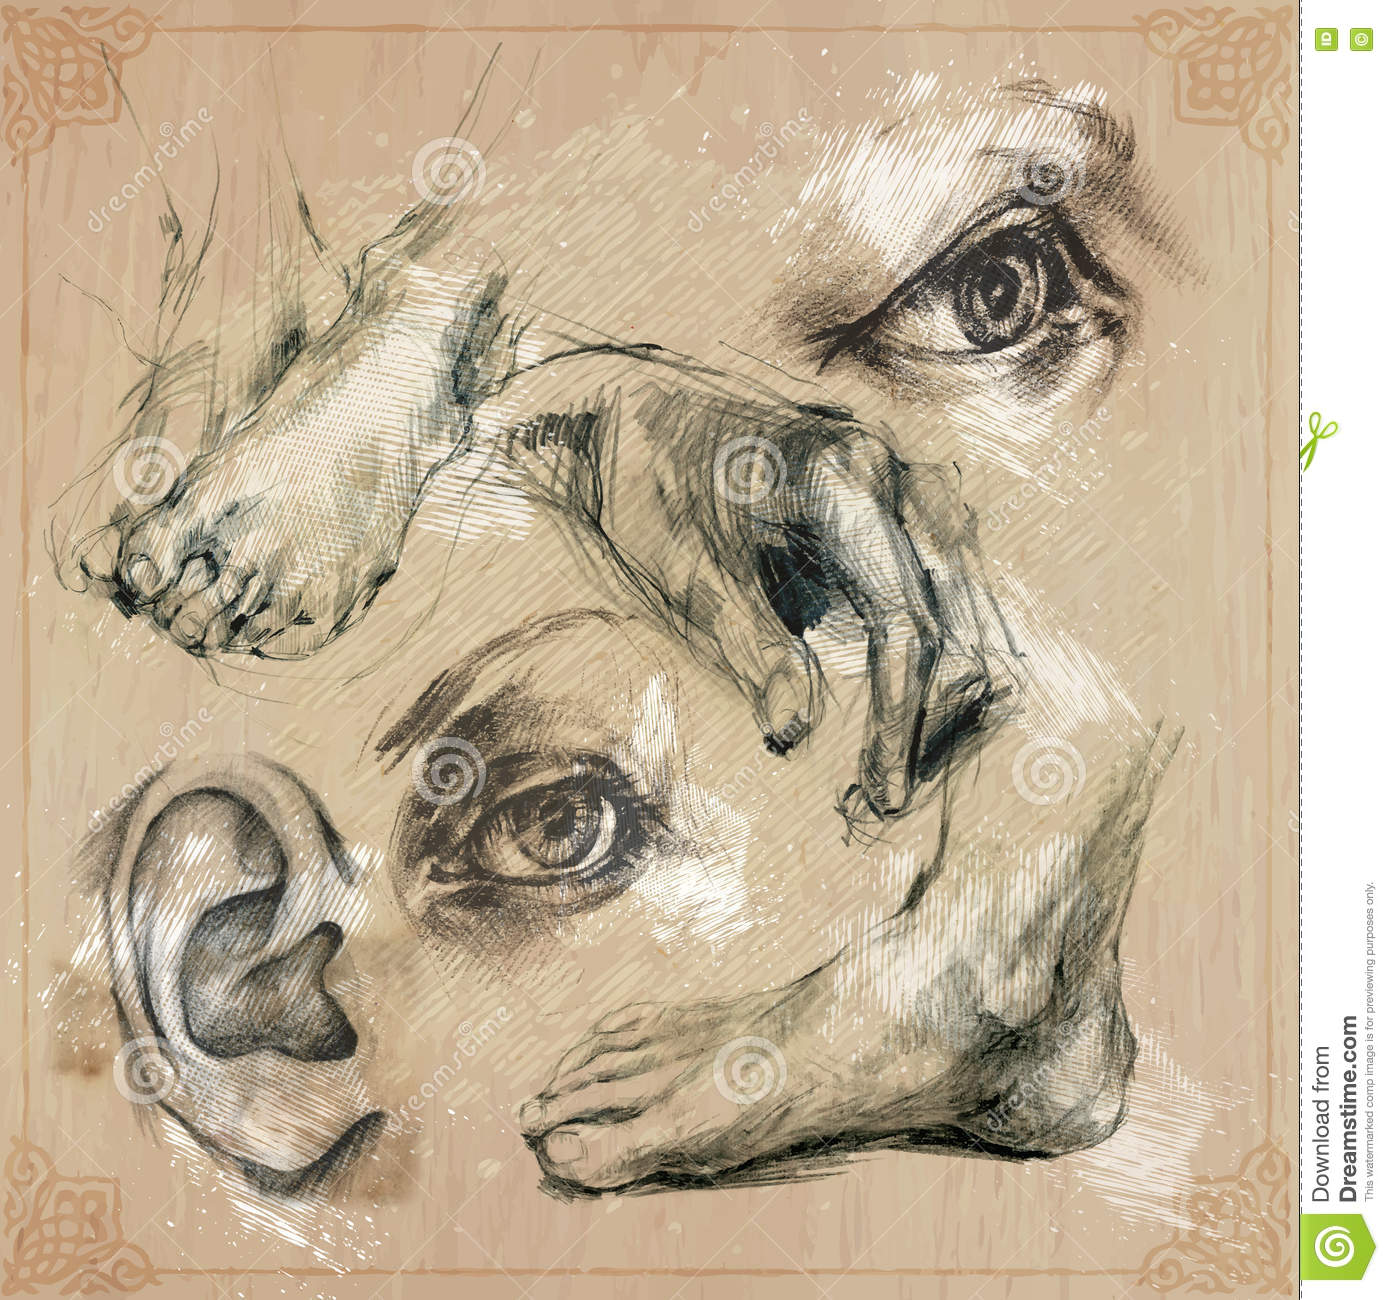 An hand drawn illustrations human body parts eye leg hand ear pencil technique converted into vector pack collection of an hand drawn illustrations